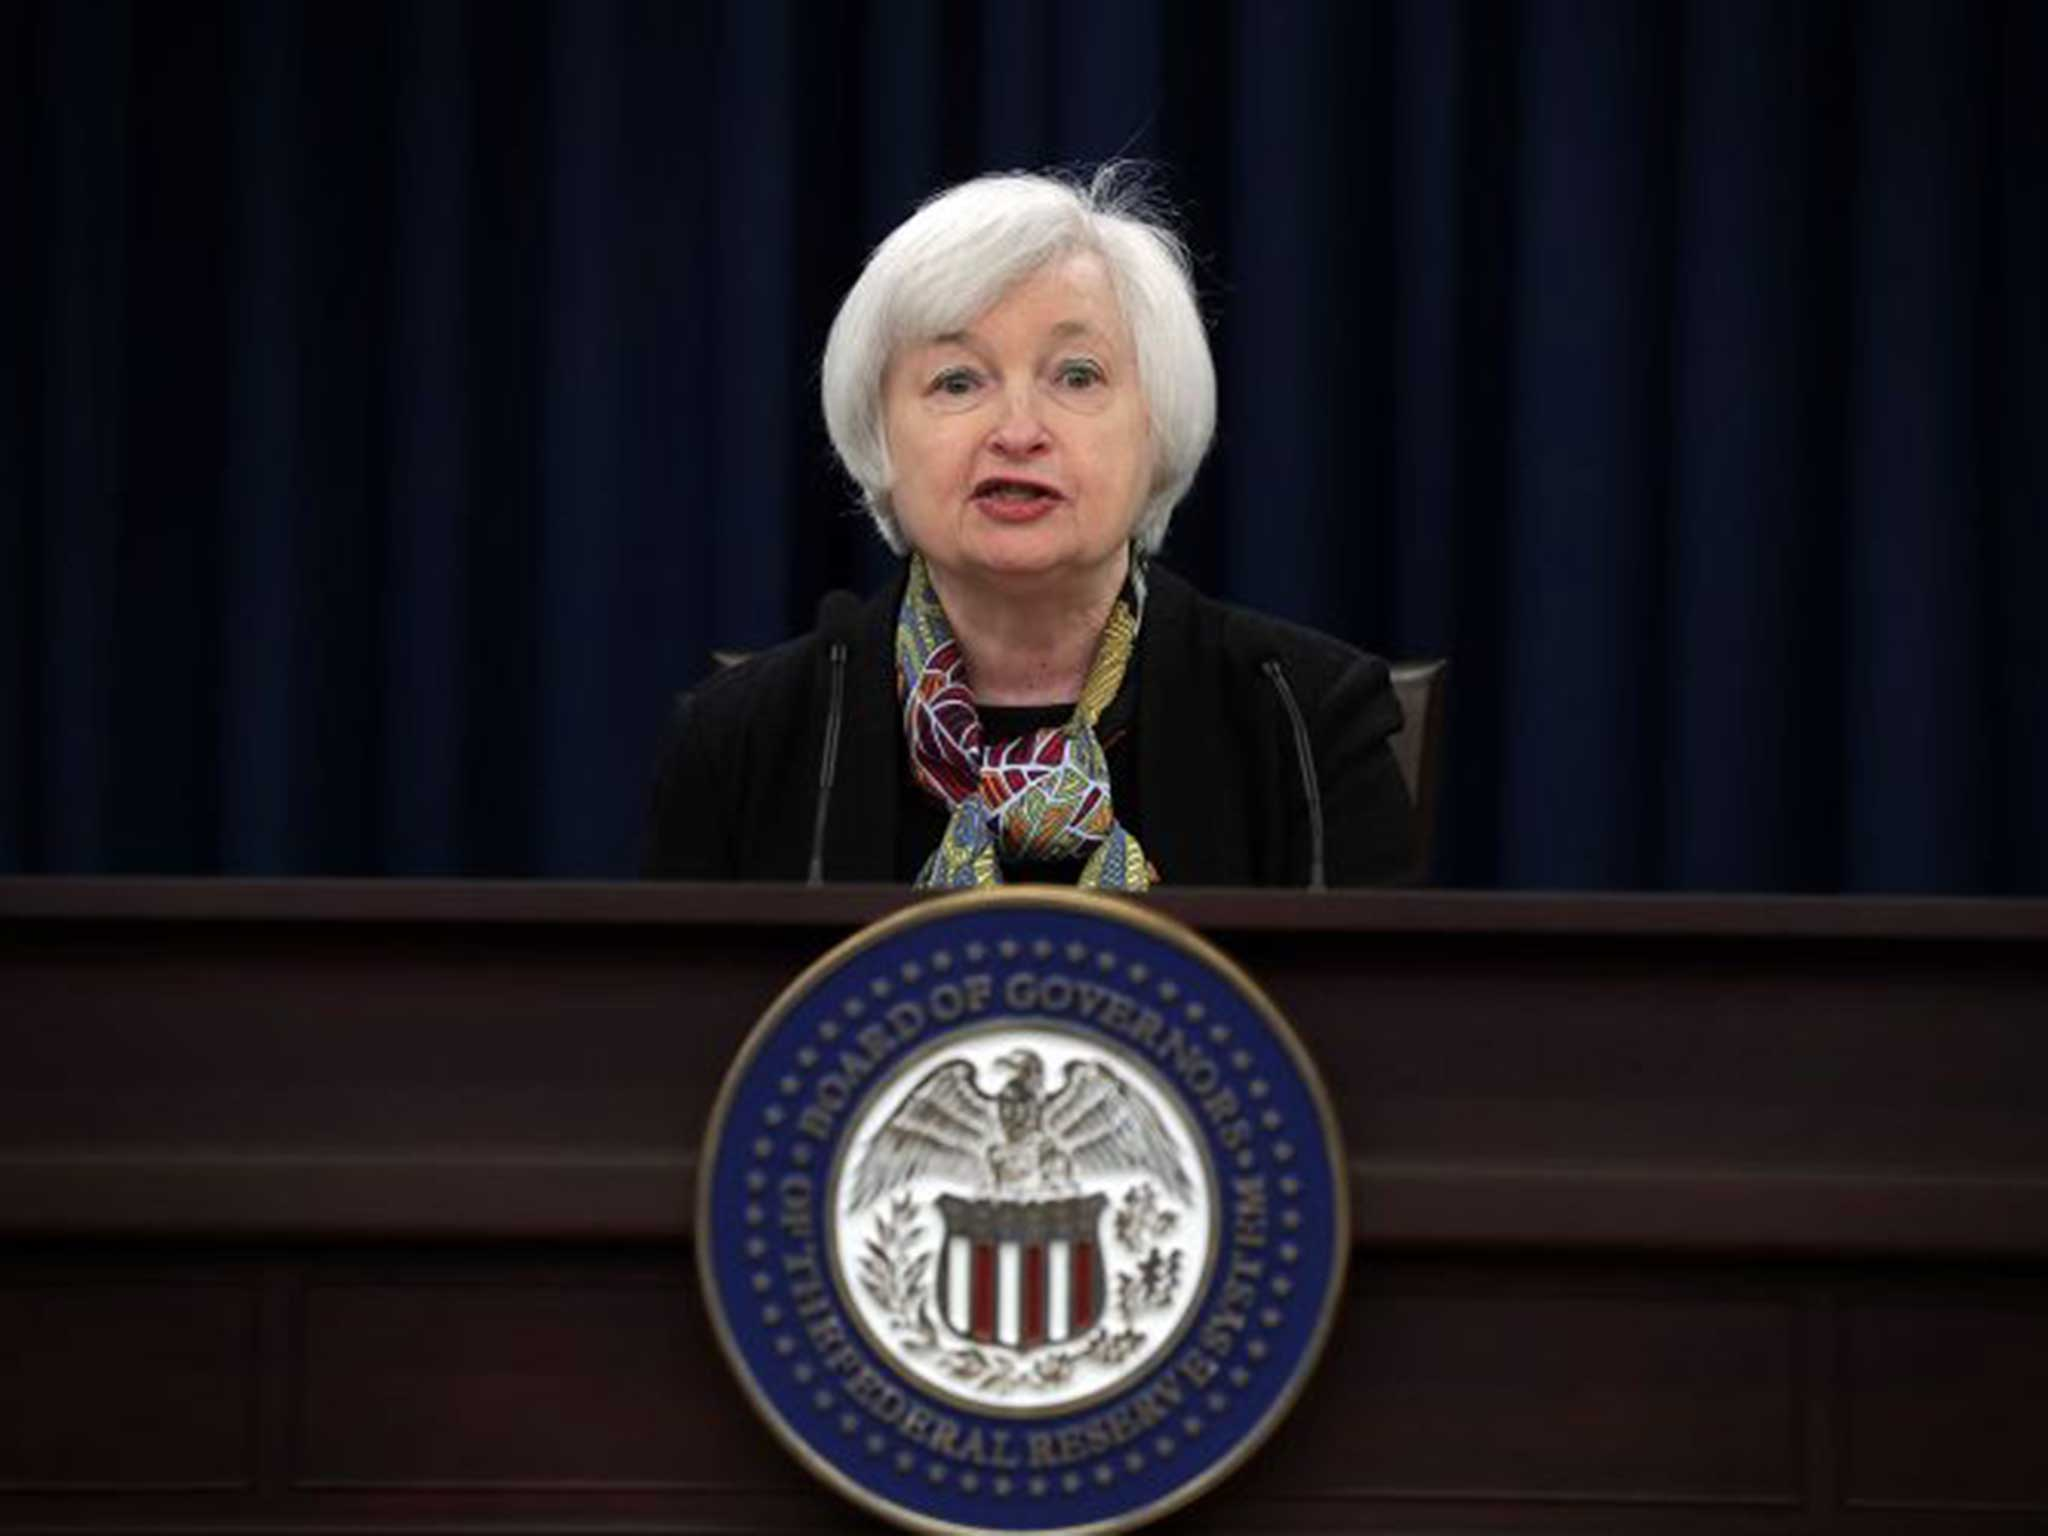 Negative interest rates will have toxic side effects